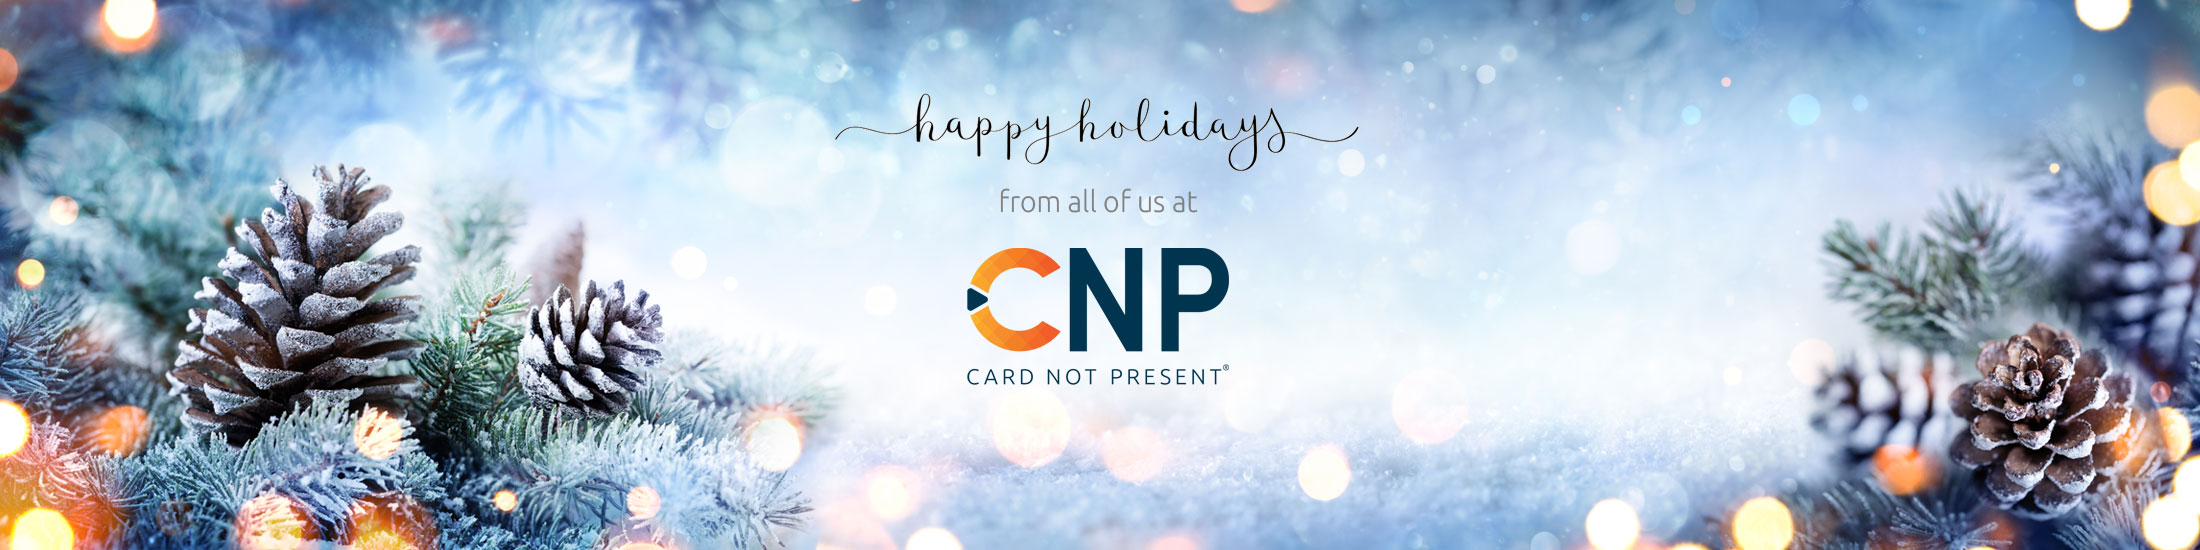 Happy Holidays from Card Not Present